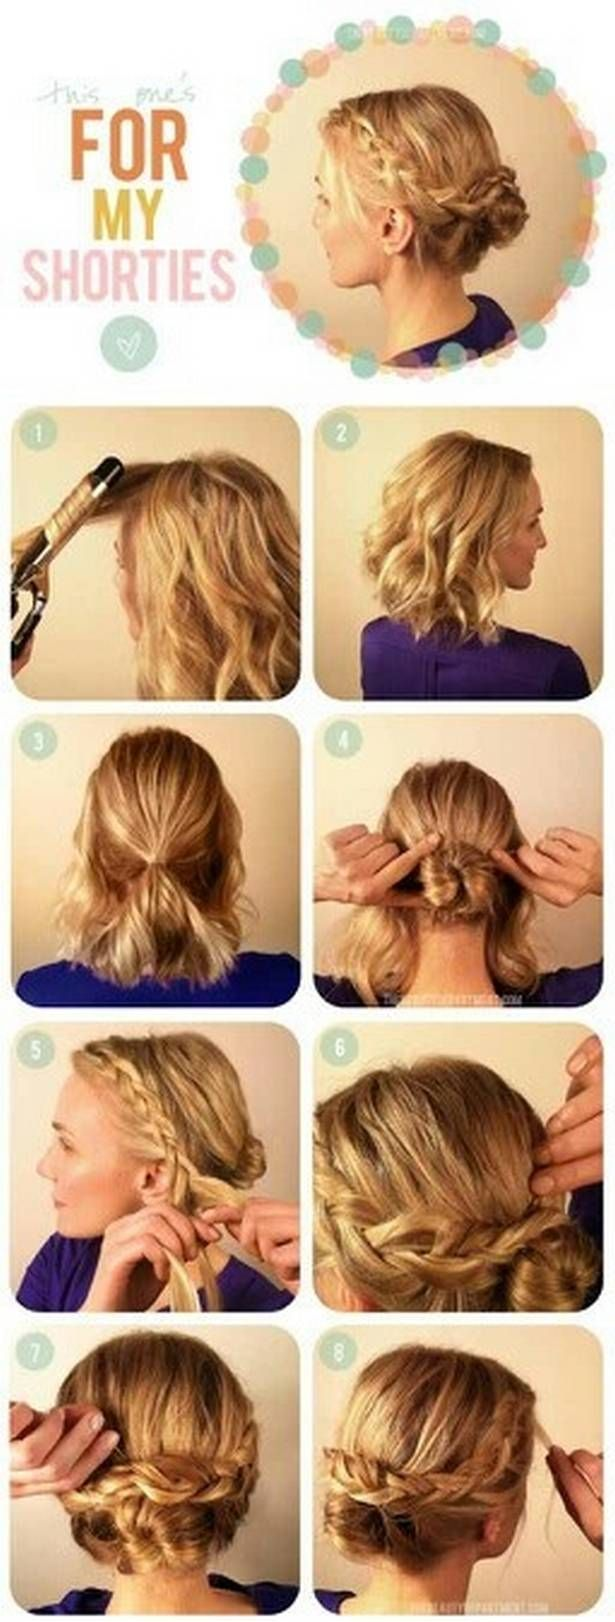 Pin By Abigail Nelson On Hair Styles Short Hair Tutorial Hair Styles Short Hair Styles